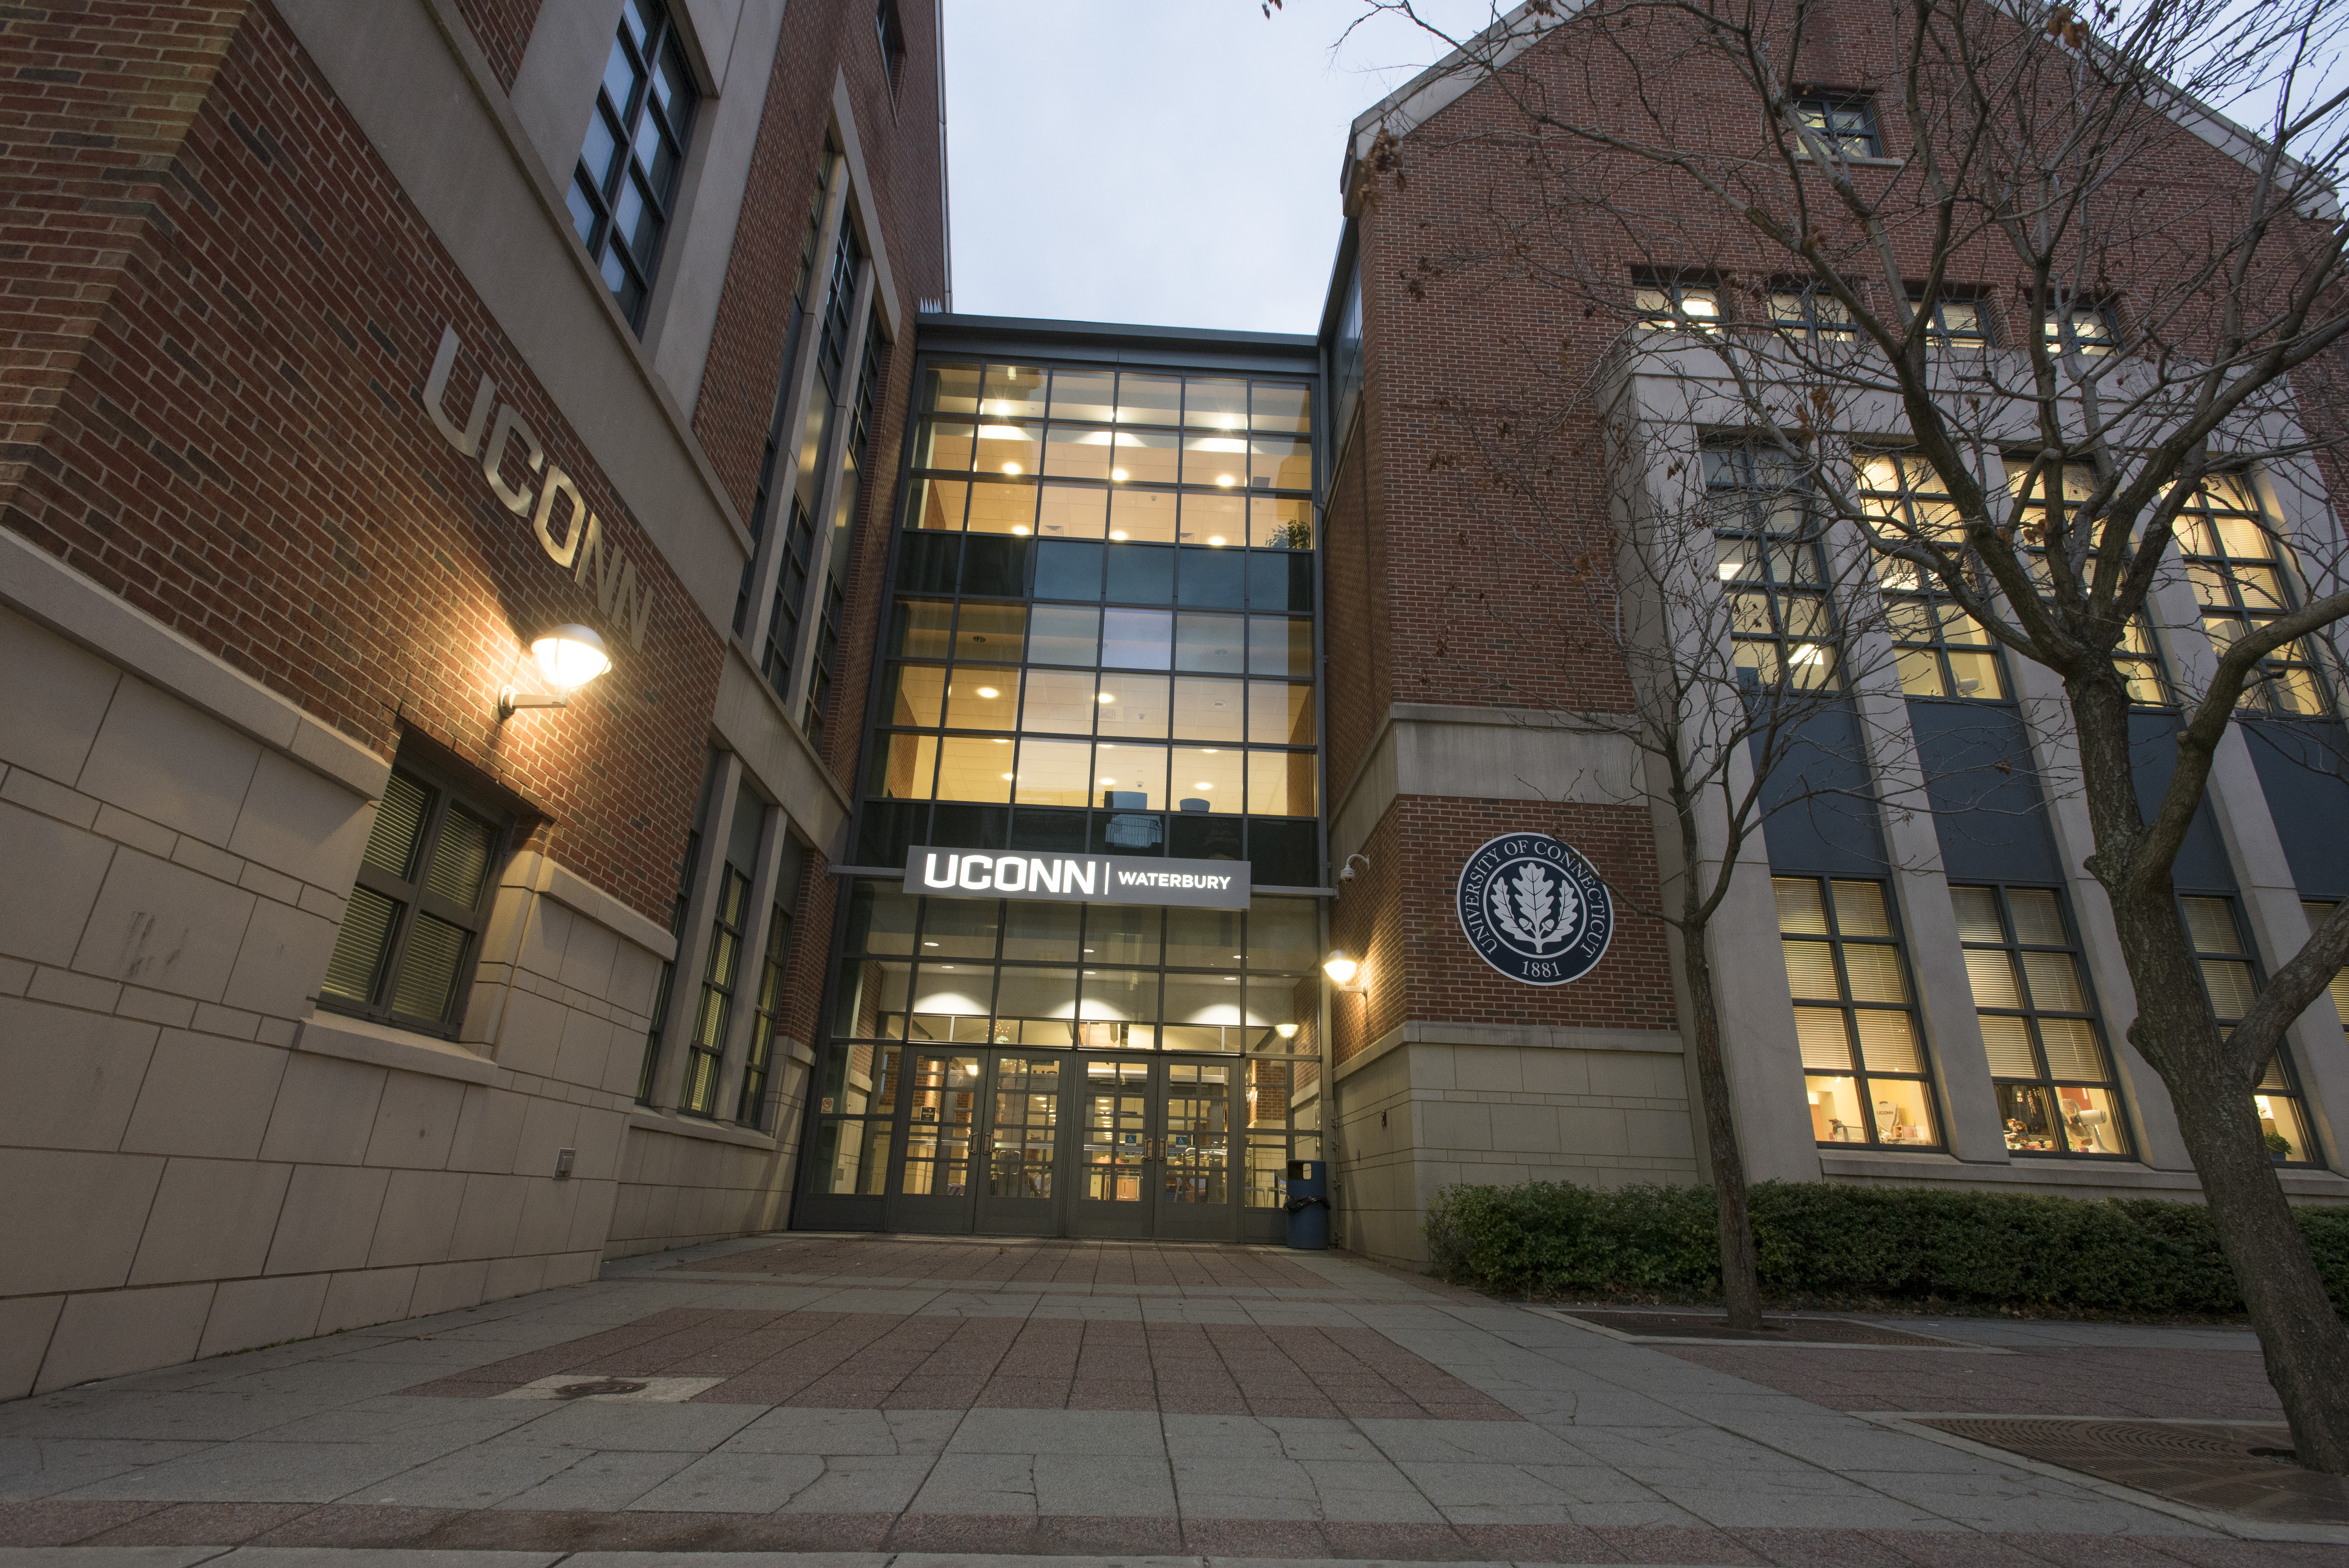 Small Liberal Arts Colleges >> Snapshot: UConn Waterbury - UConn Today